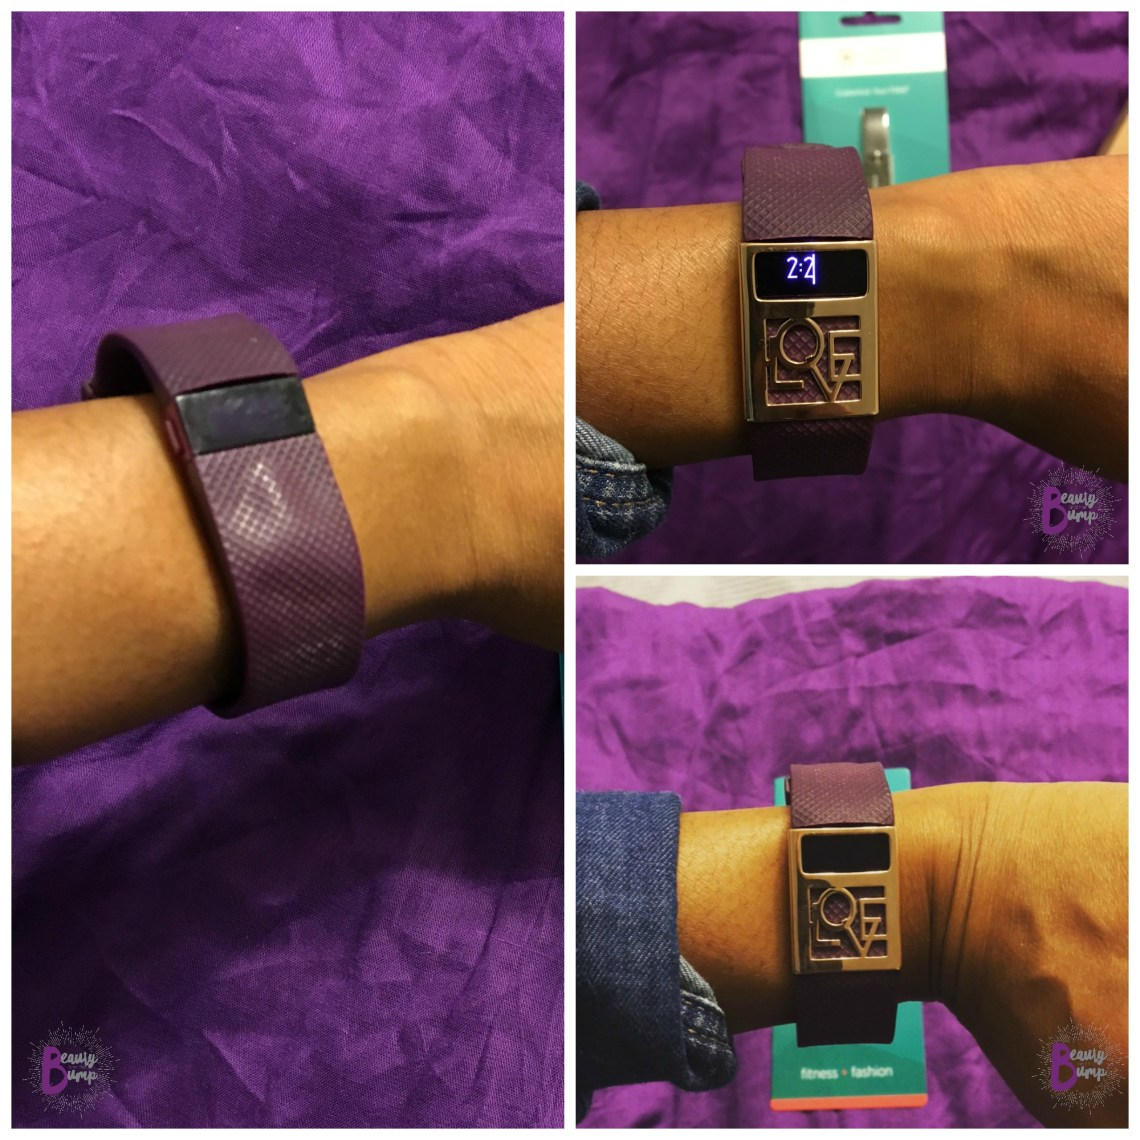 Funktional Wearables FitBit Charge HR Transformation